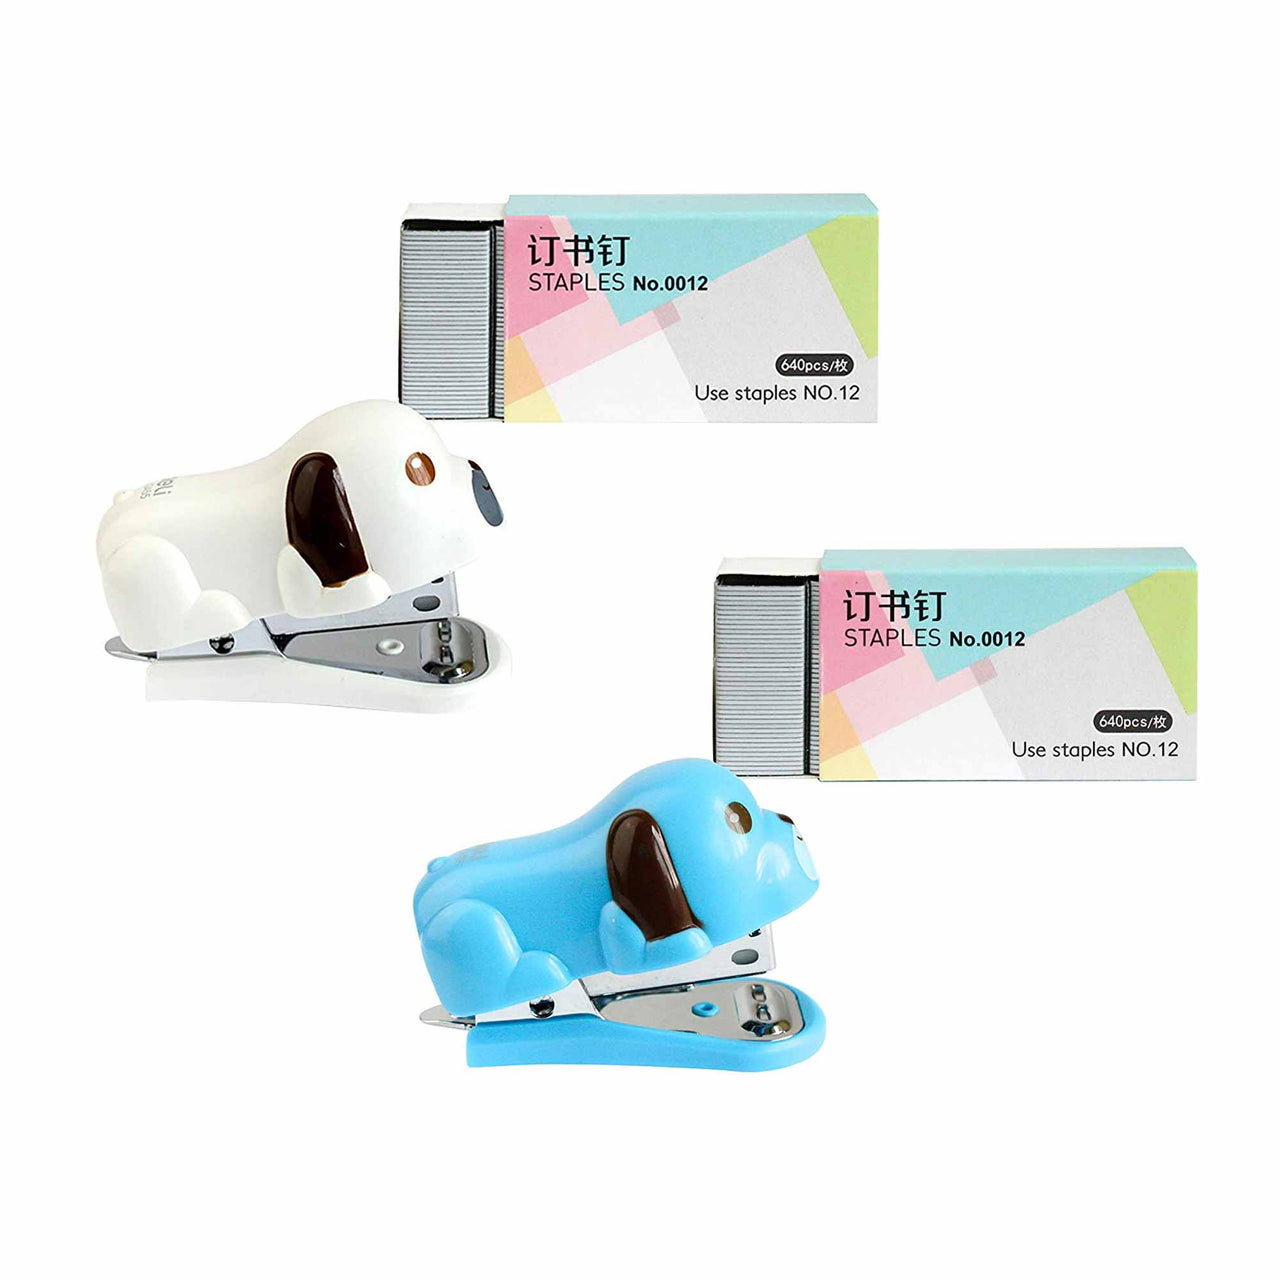 Small Puppy Stapler - Set of 2